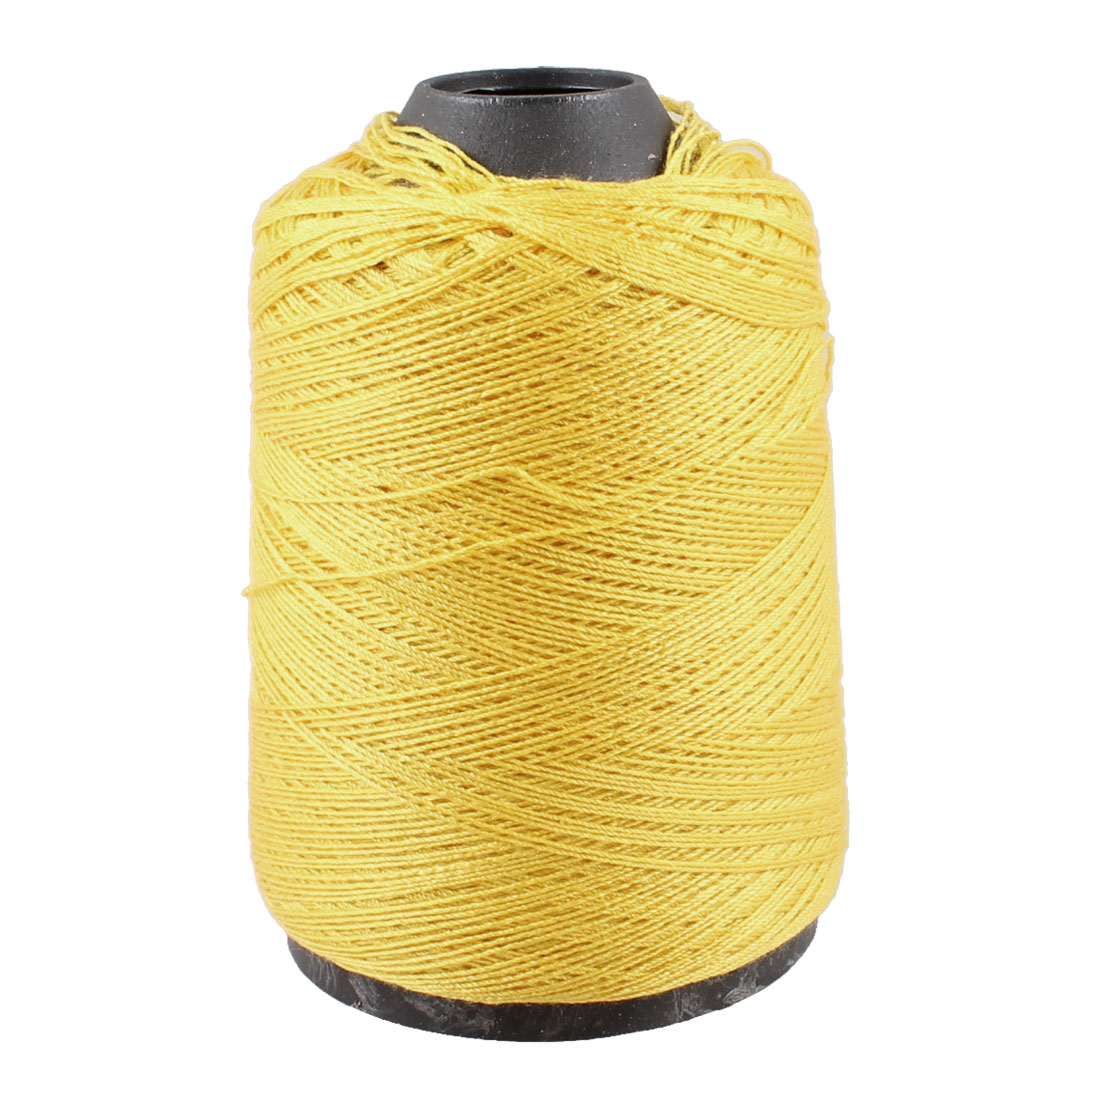 Seamstress Tailor Hand Embroidery Sewing Quilting Yellow Thread Spool